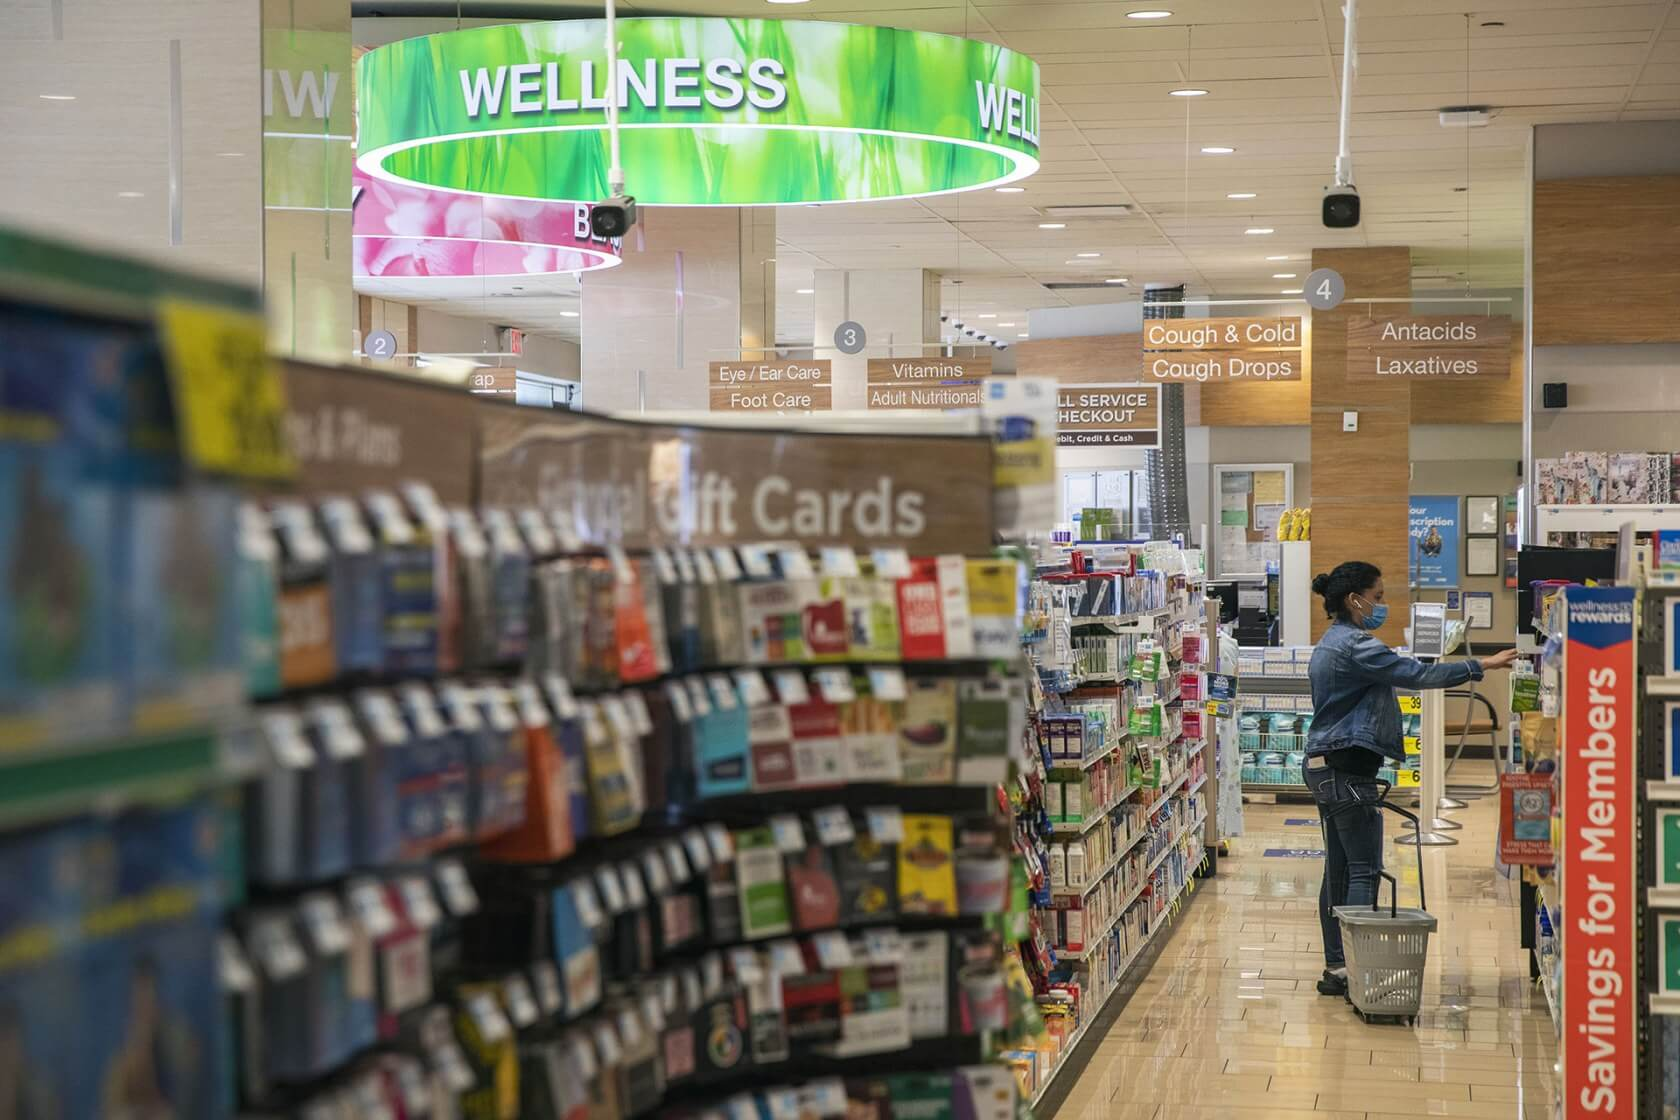 Rite Aid has been using facial recognition tech across hundreds of its stores 1